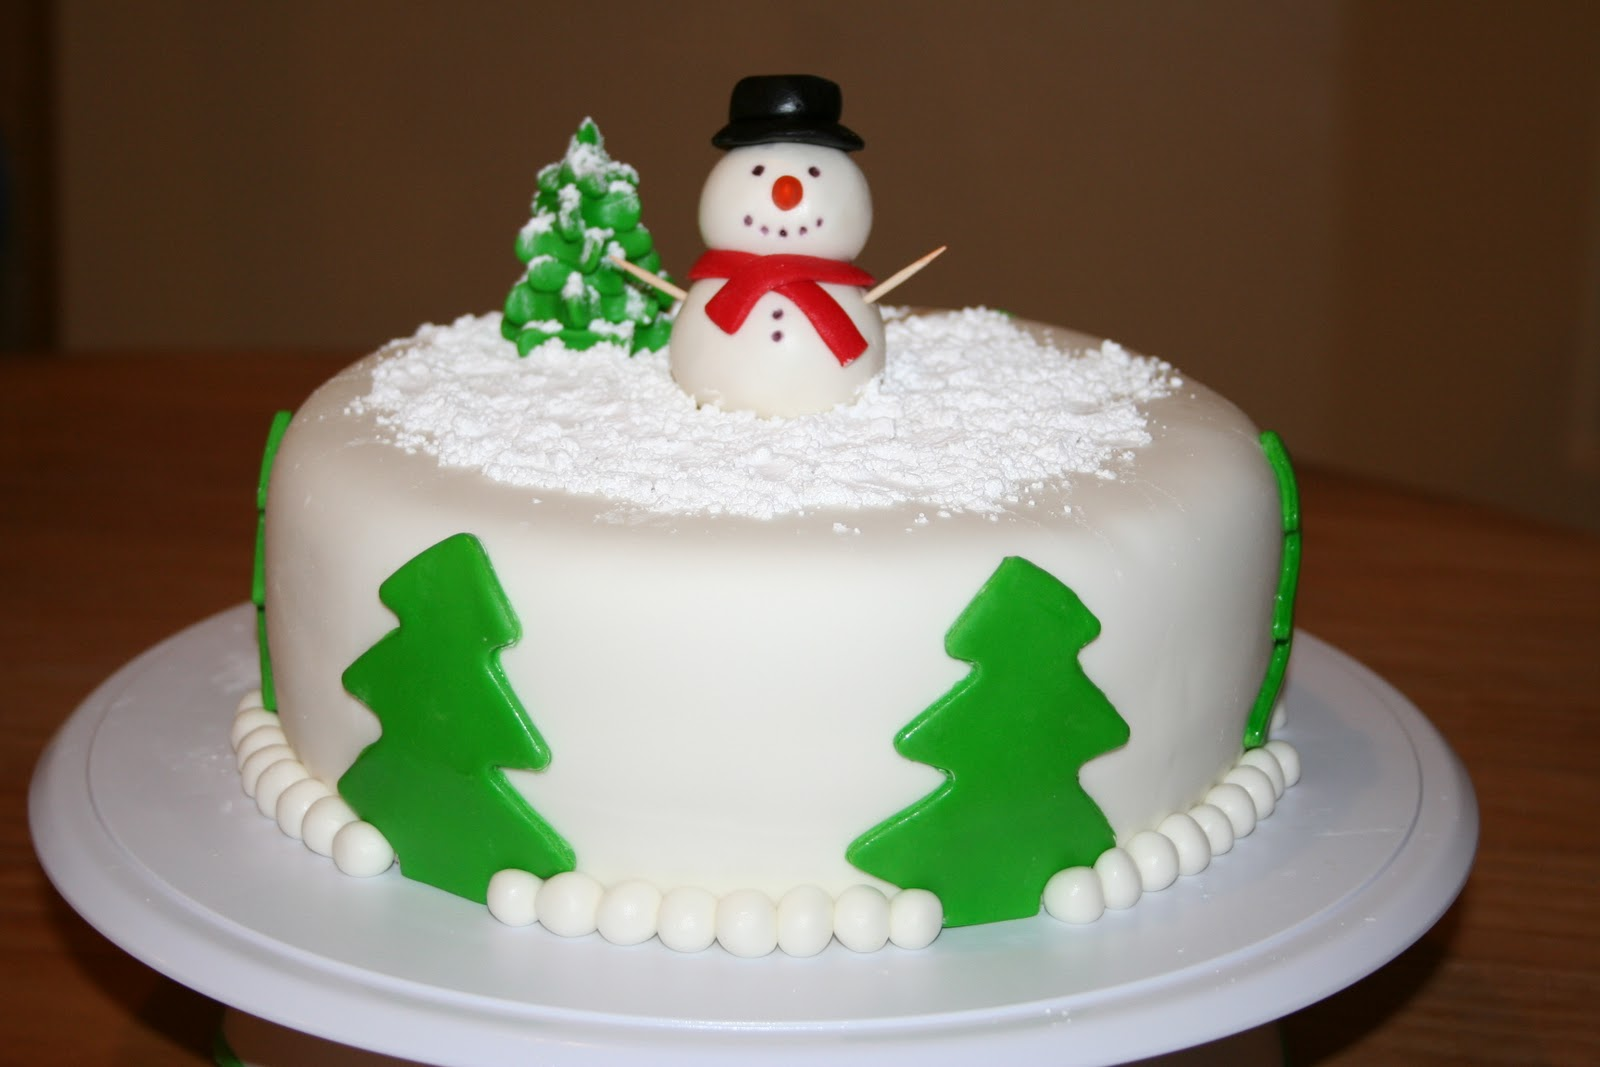 Christmas Cake Decoration Snowman : Cakes by Nicola: Frosty the Snowman Cake